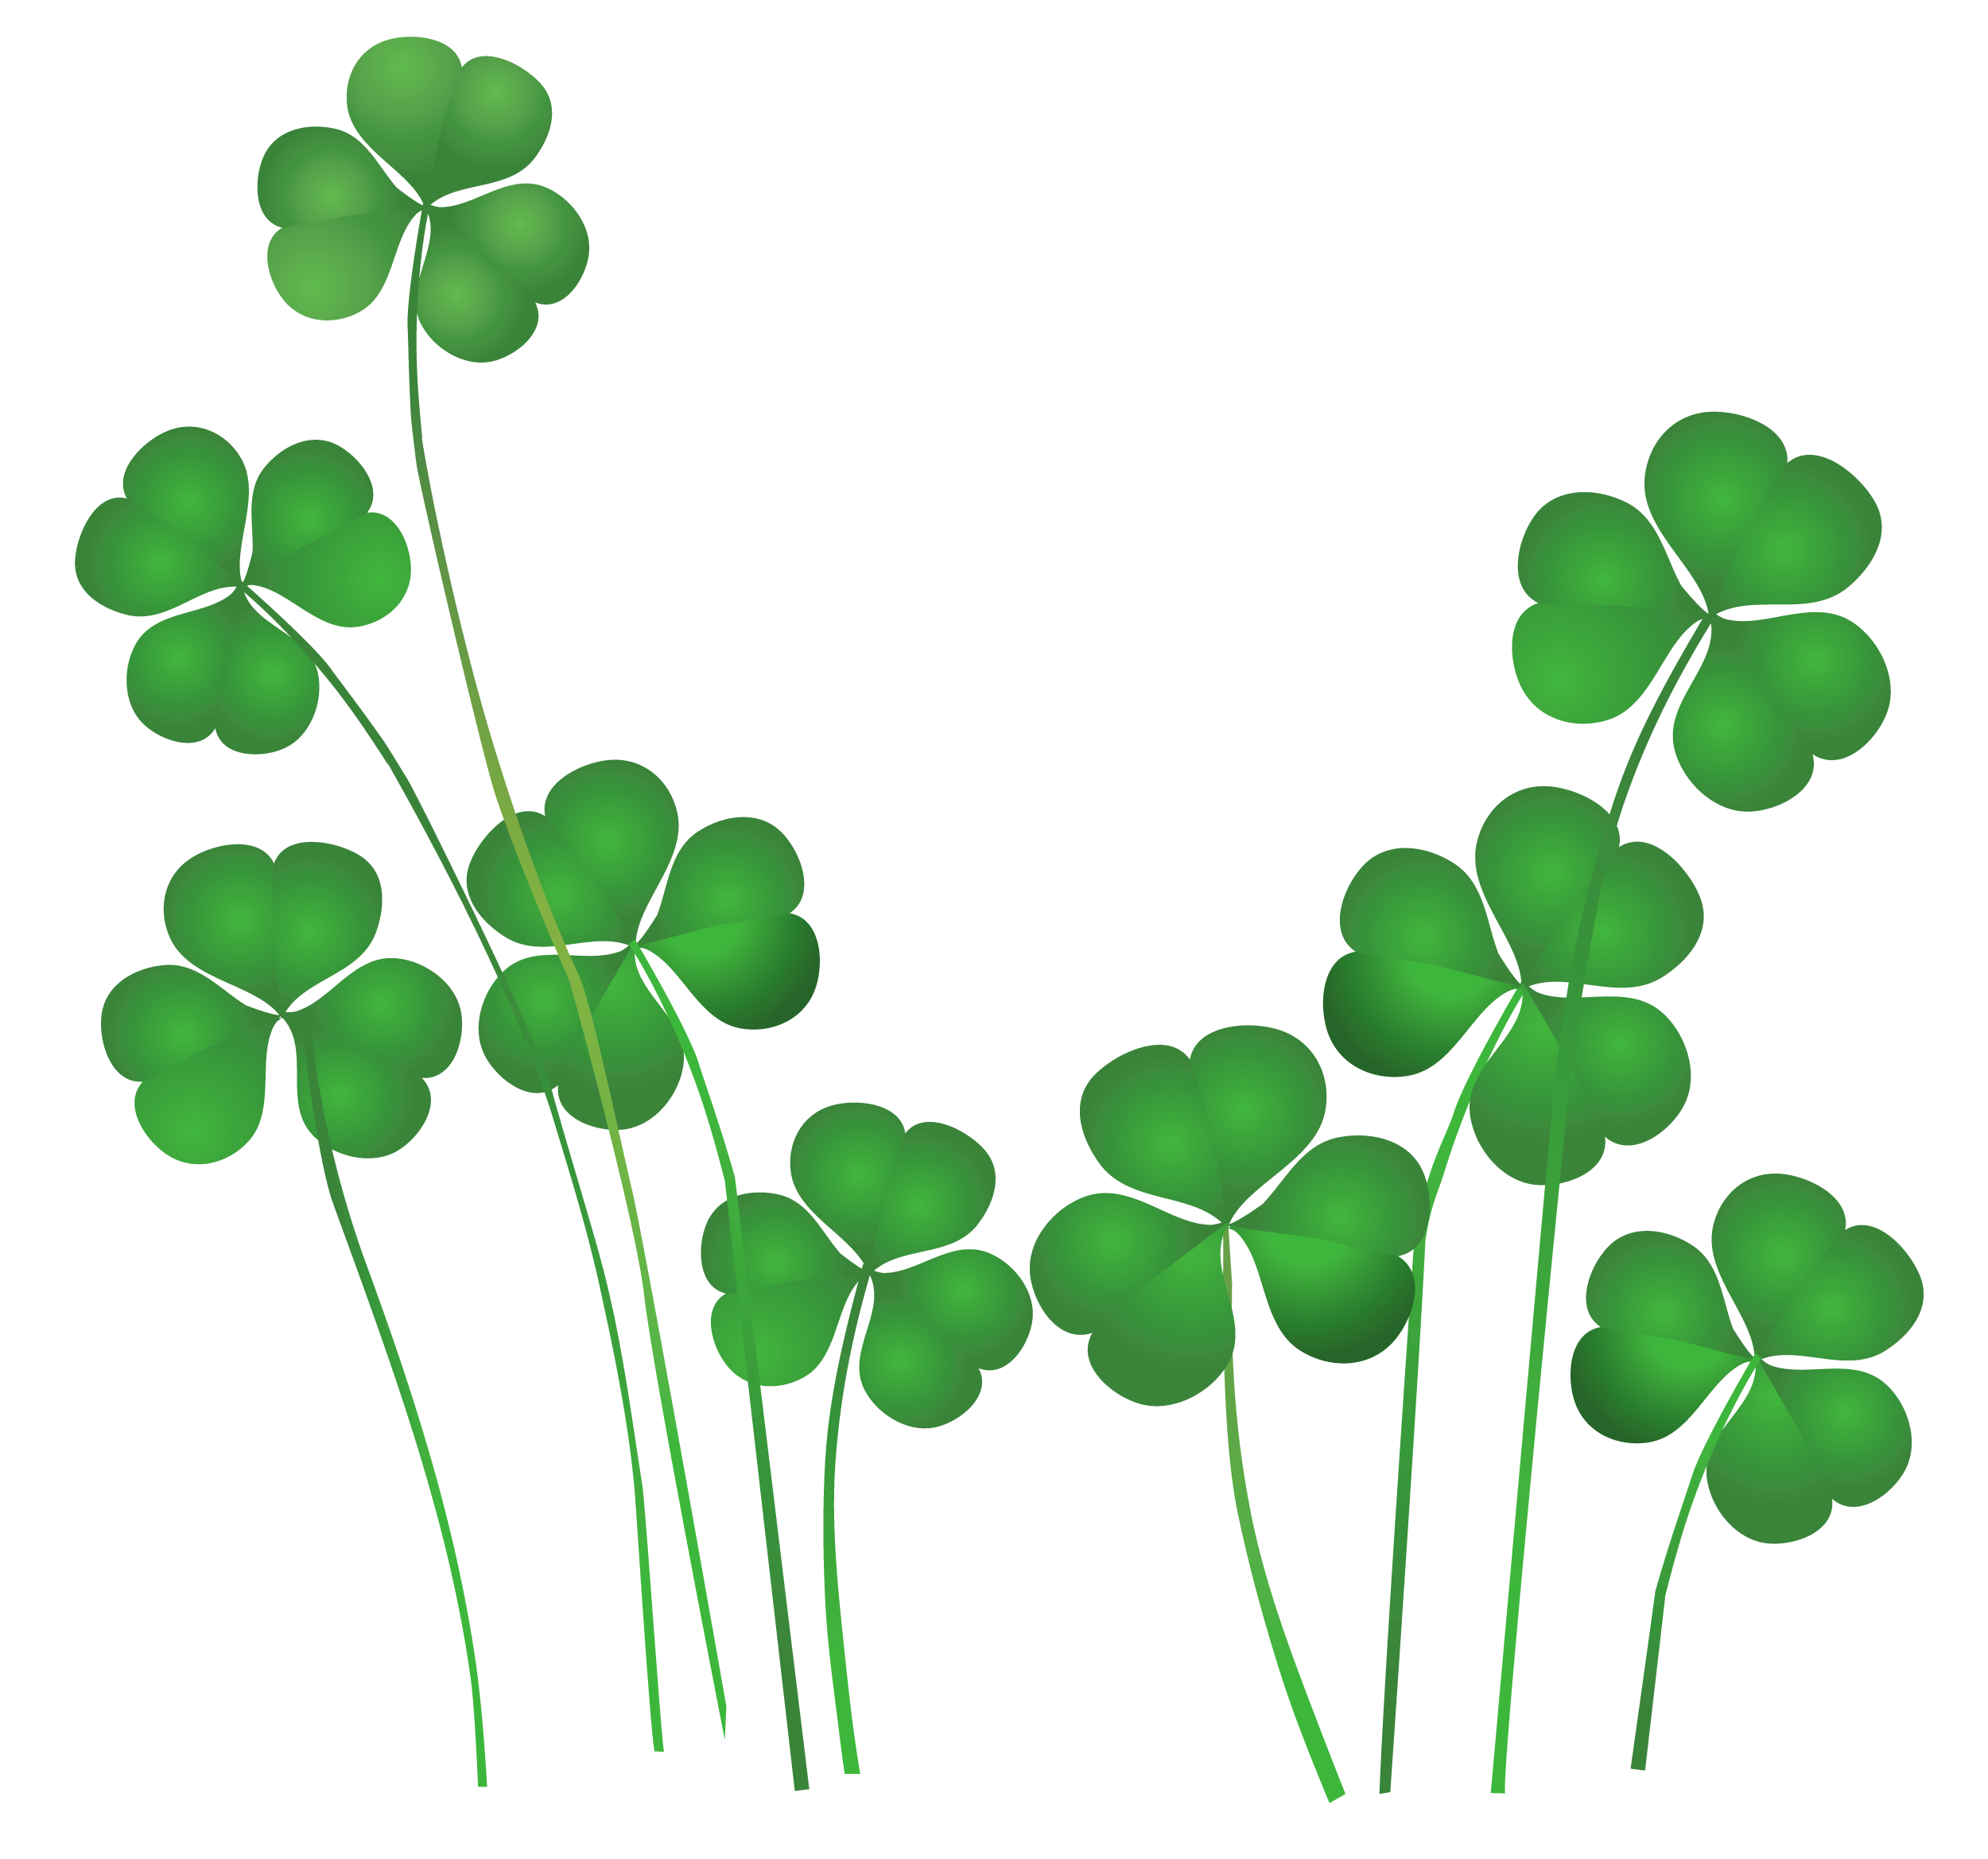 st patrick day clip art images clipart panda free clipart images rh clipartpanda com clip art st patrick's day shamrock clipart free st patrick's day